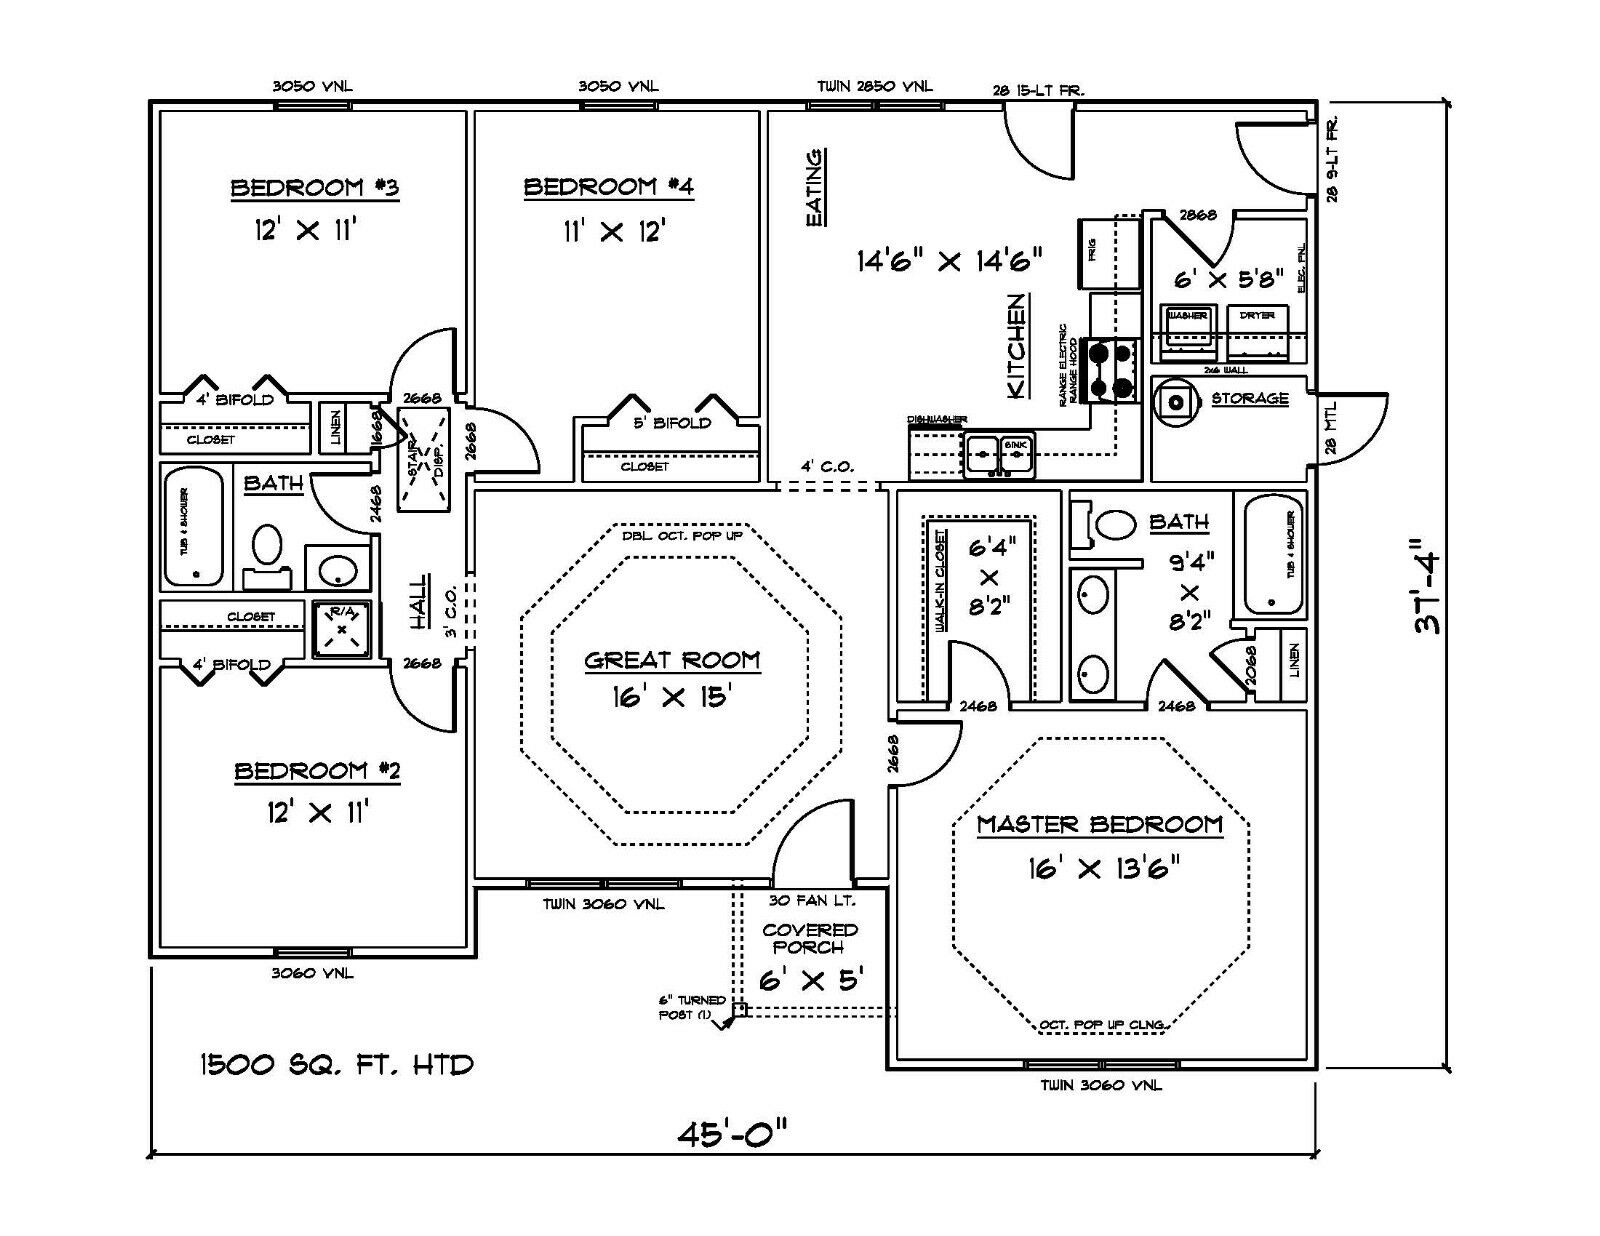 Unique house plans 1500 square feet house floor ideas for 1500 sq ft single story house plans